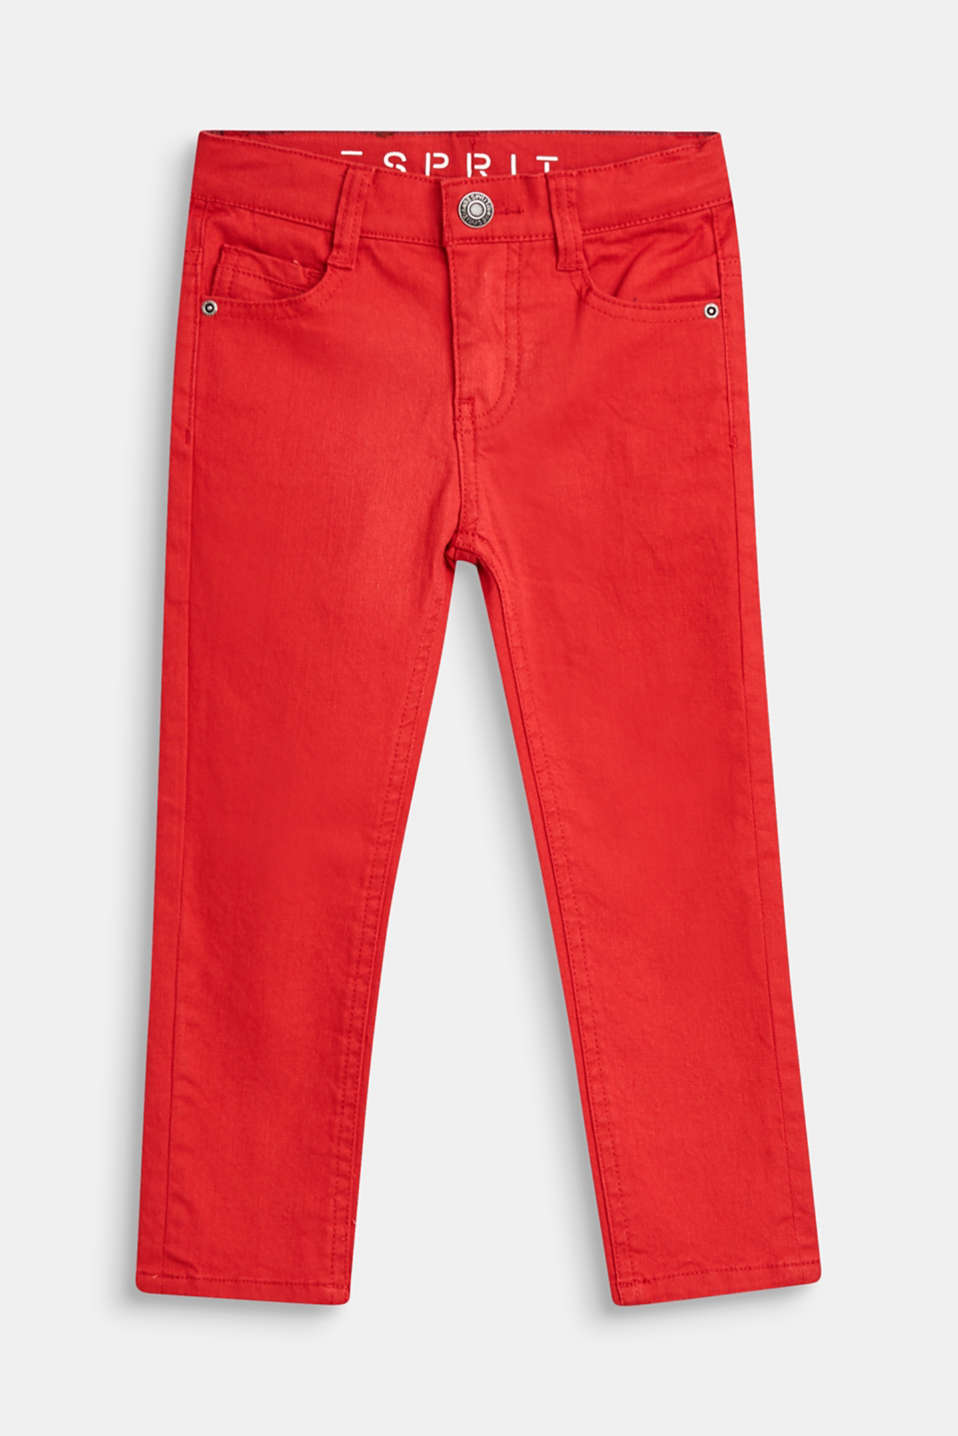 Esprit - Stretch cotton jeans